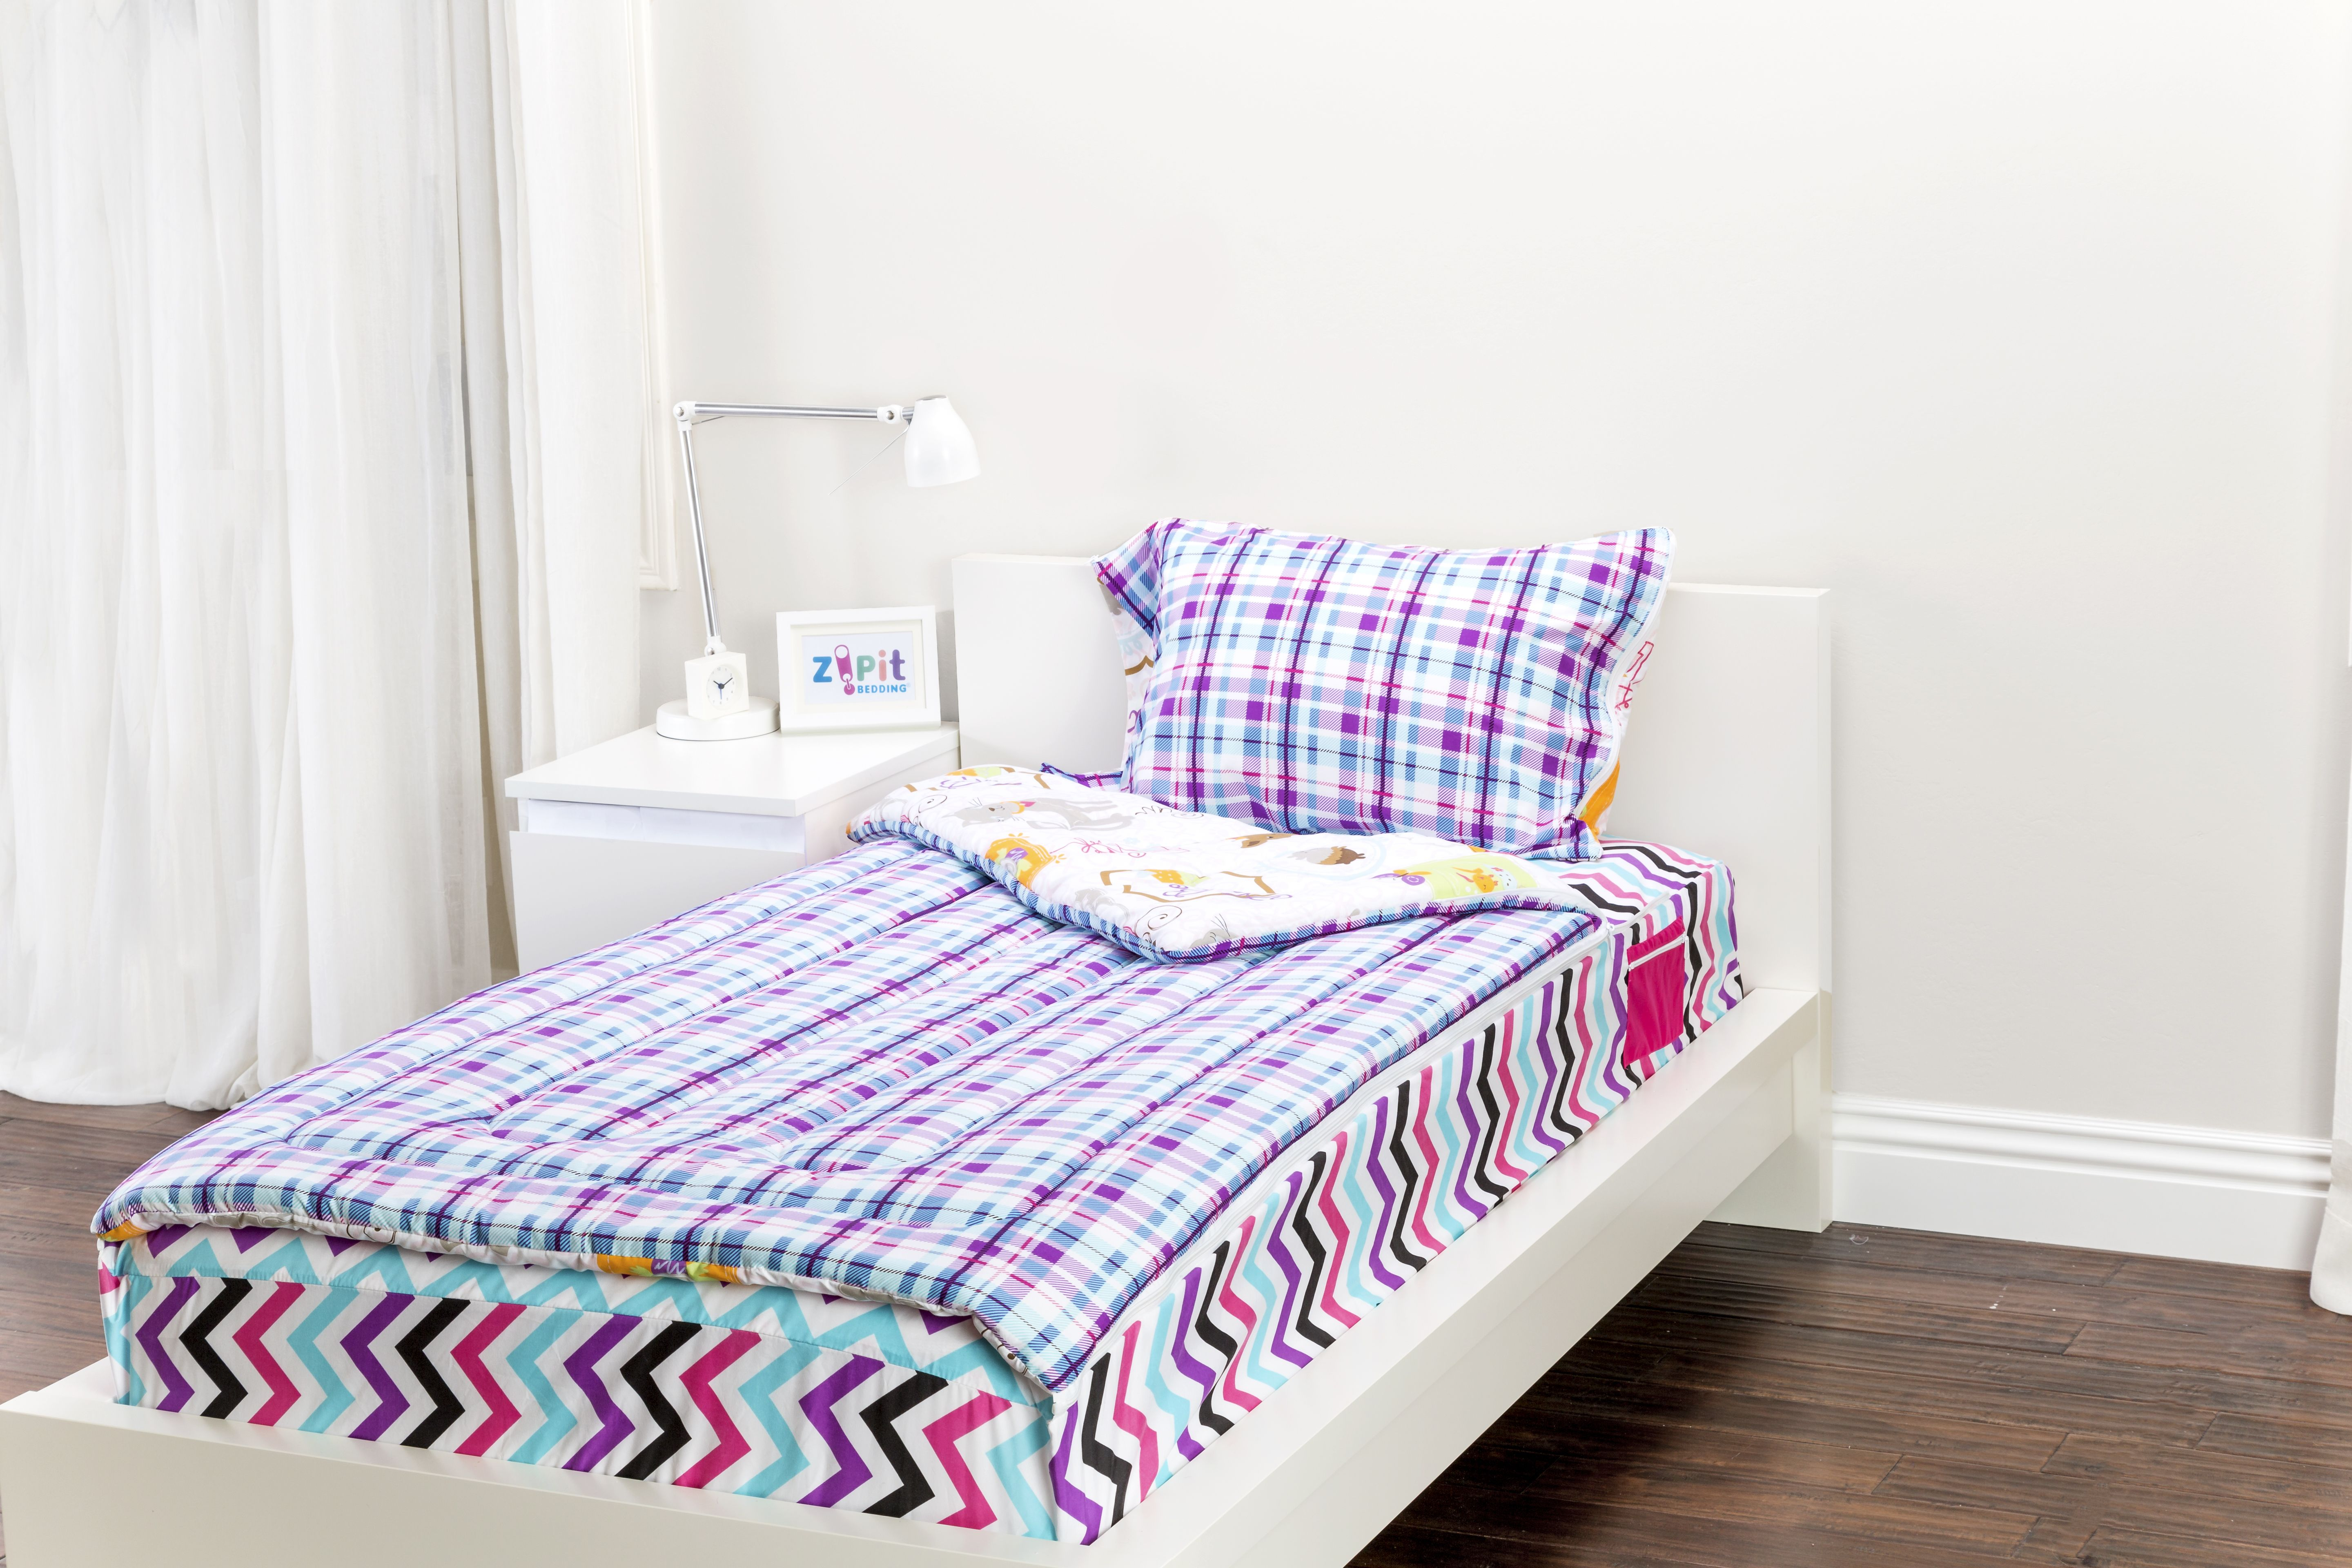 Zipit Bedding Mix 'N Match with Sweet Stuff and Rocker